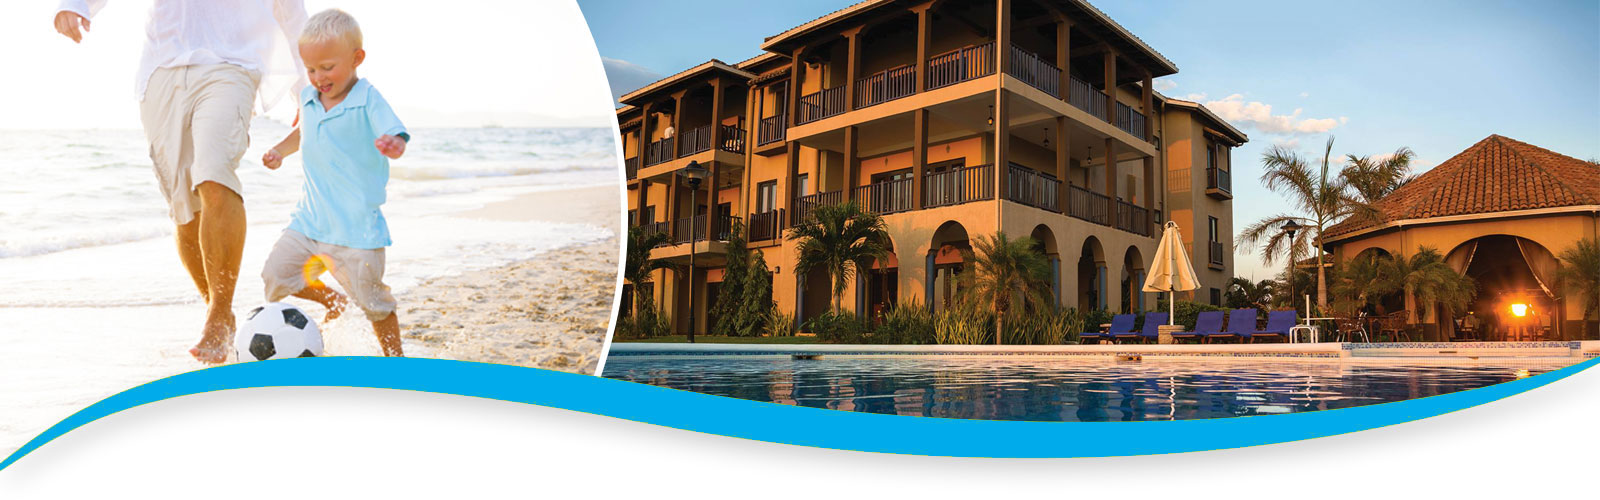 Las Perlas, Oceanfront Condominiums at Gran Pacifica Resort